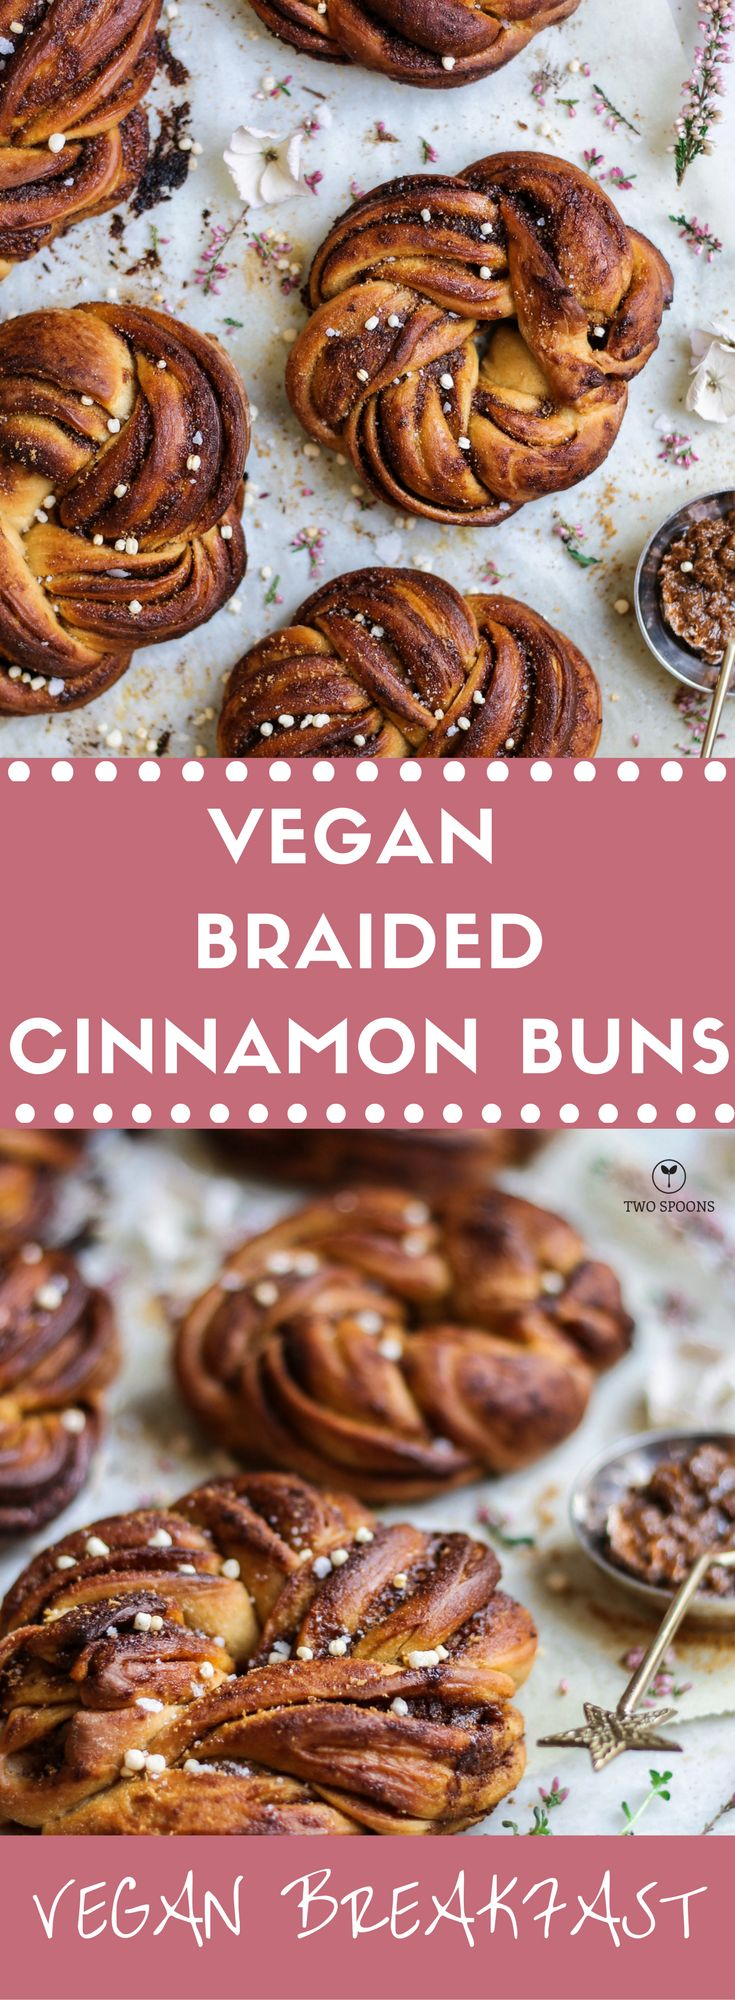 VEGAN BRAIDED CINNAMON BUNS | Easy, Healthy and Delicious Vegan Recipes | TWO SPOONS